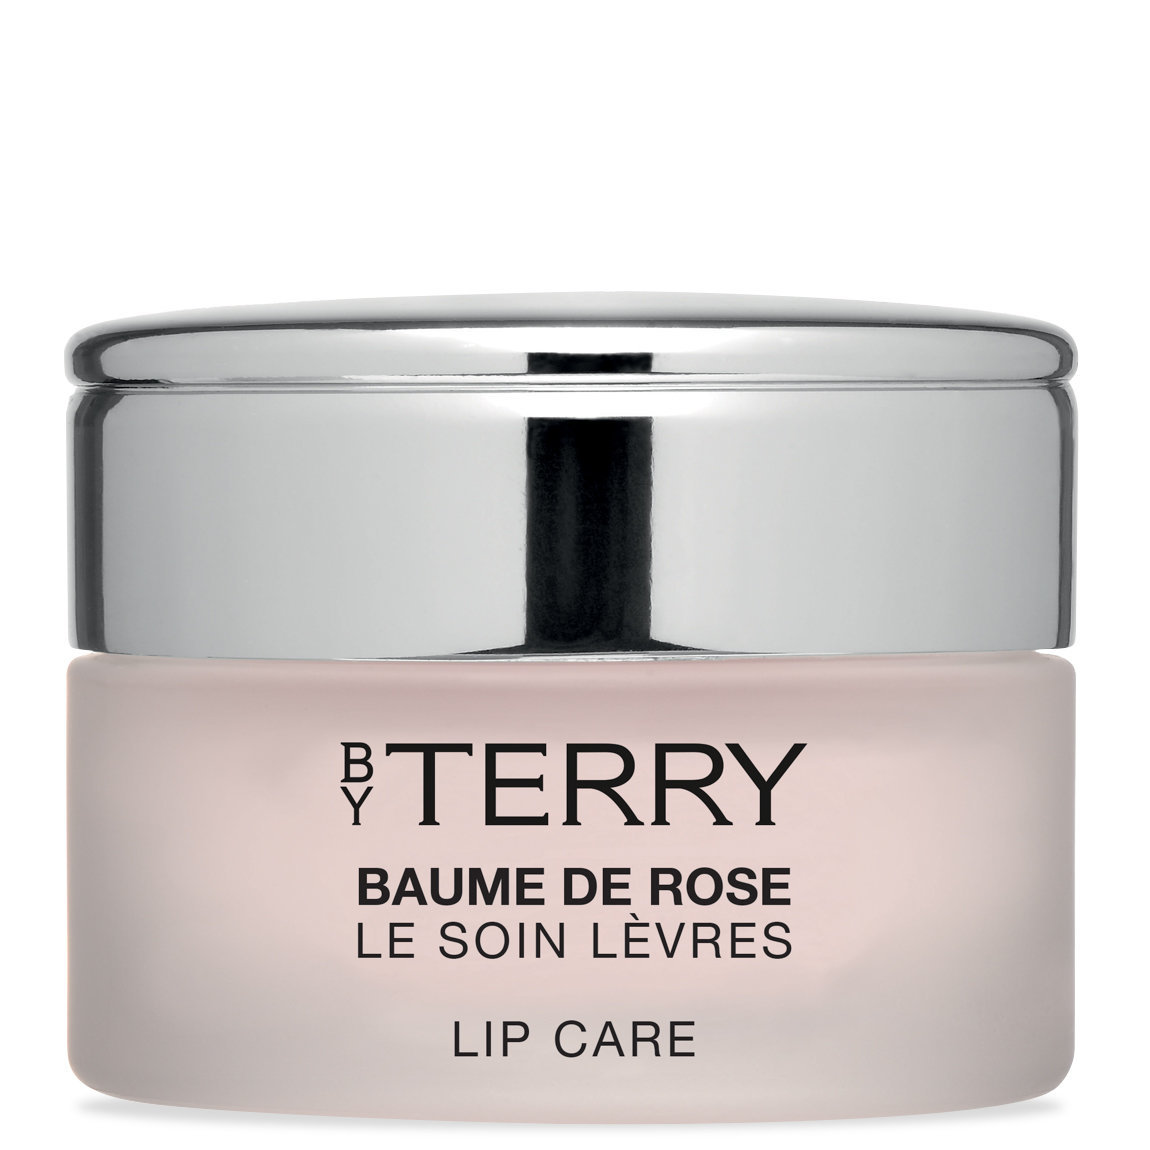 BY TERRY Baume de Rose alternative view 1 - product swatch.